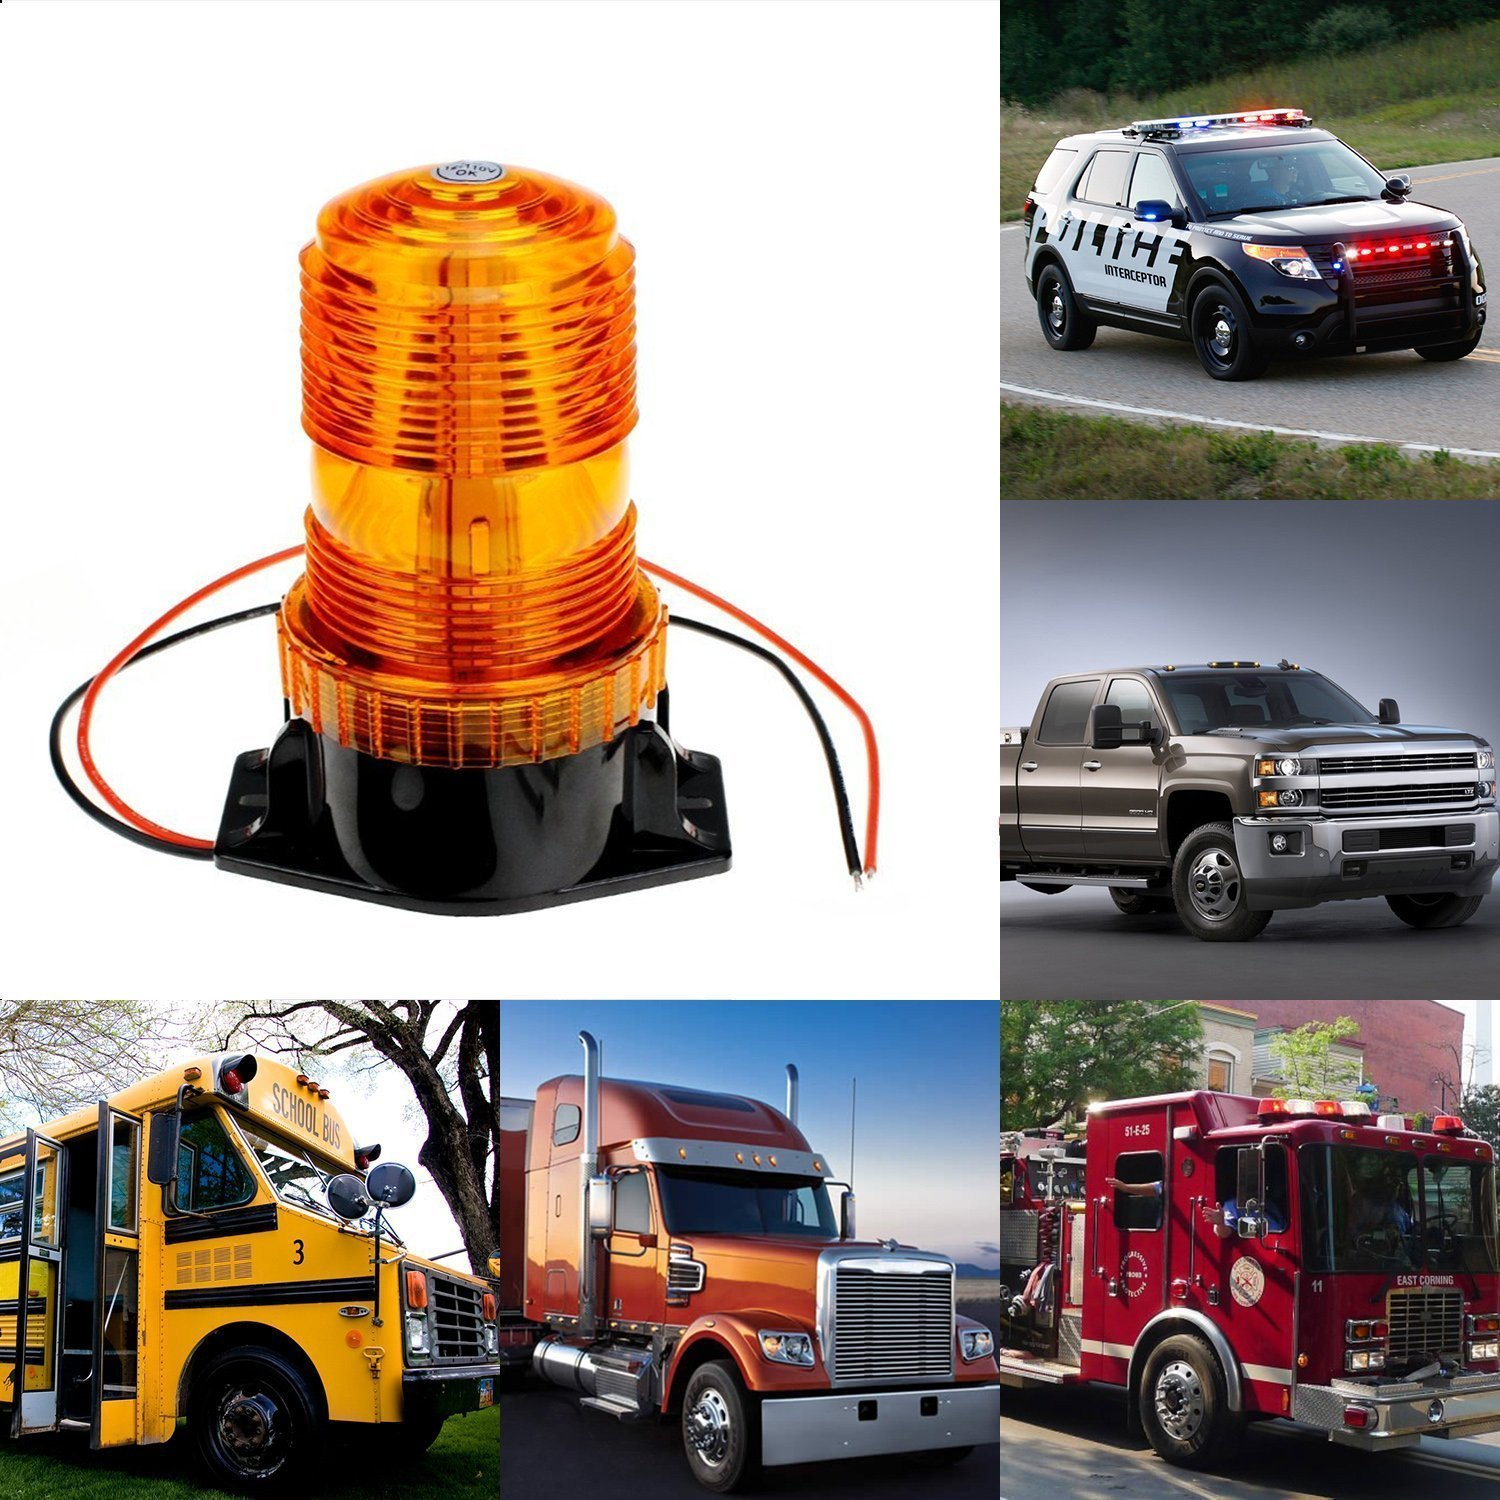 BESTSXMA LED Emergency Warning Light 30 LEDs Amber Strobe Flashing Warning light 15W Waterproof Car Truck Automotive